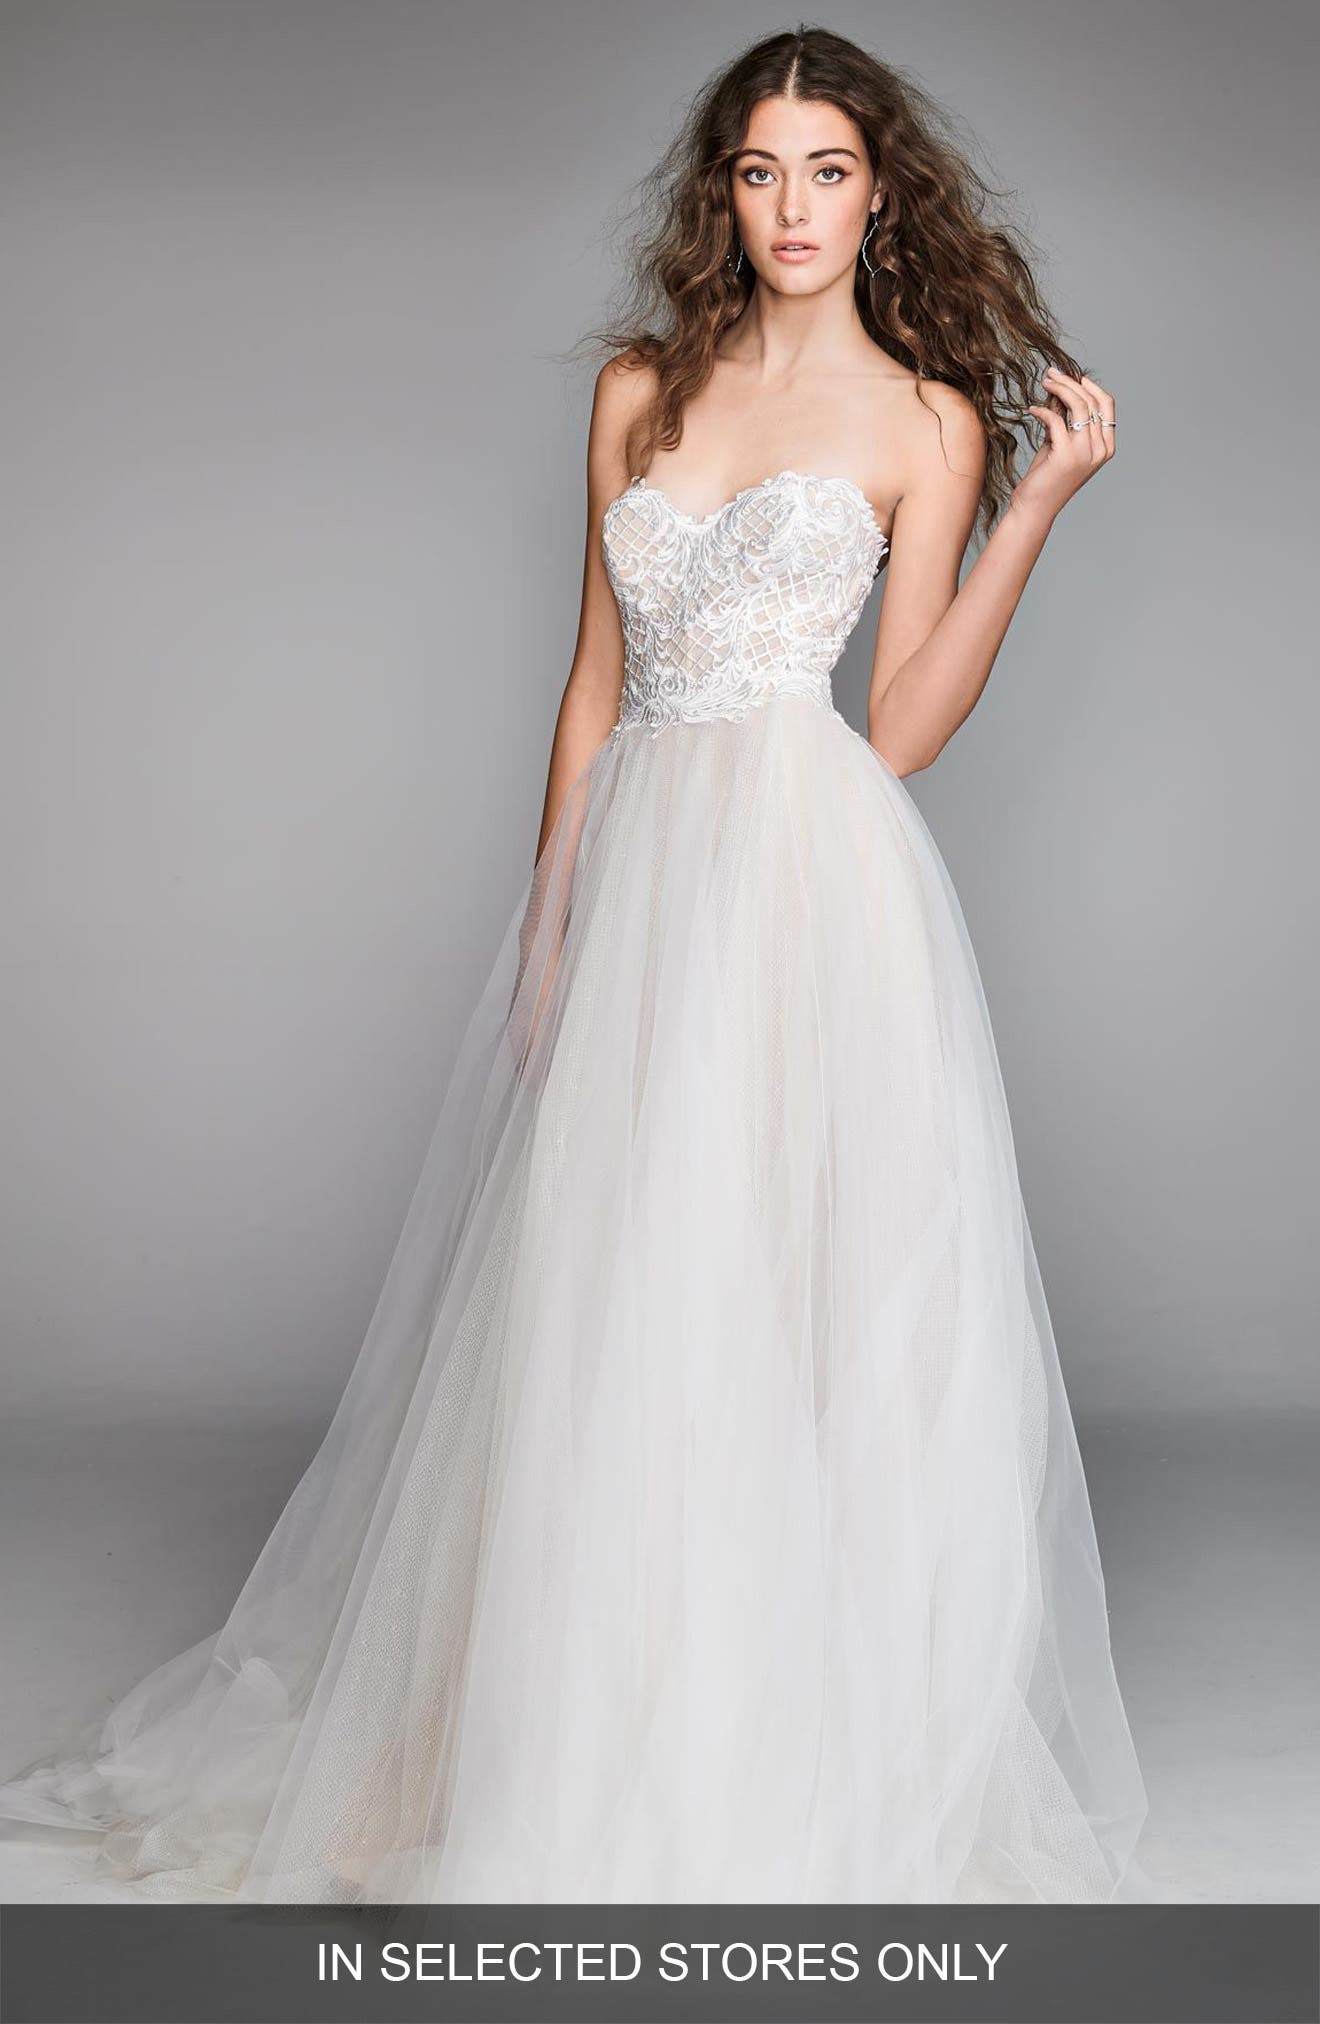 Main Image - Willowby Mandara Lace & Tulle Strapless Ballgown